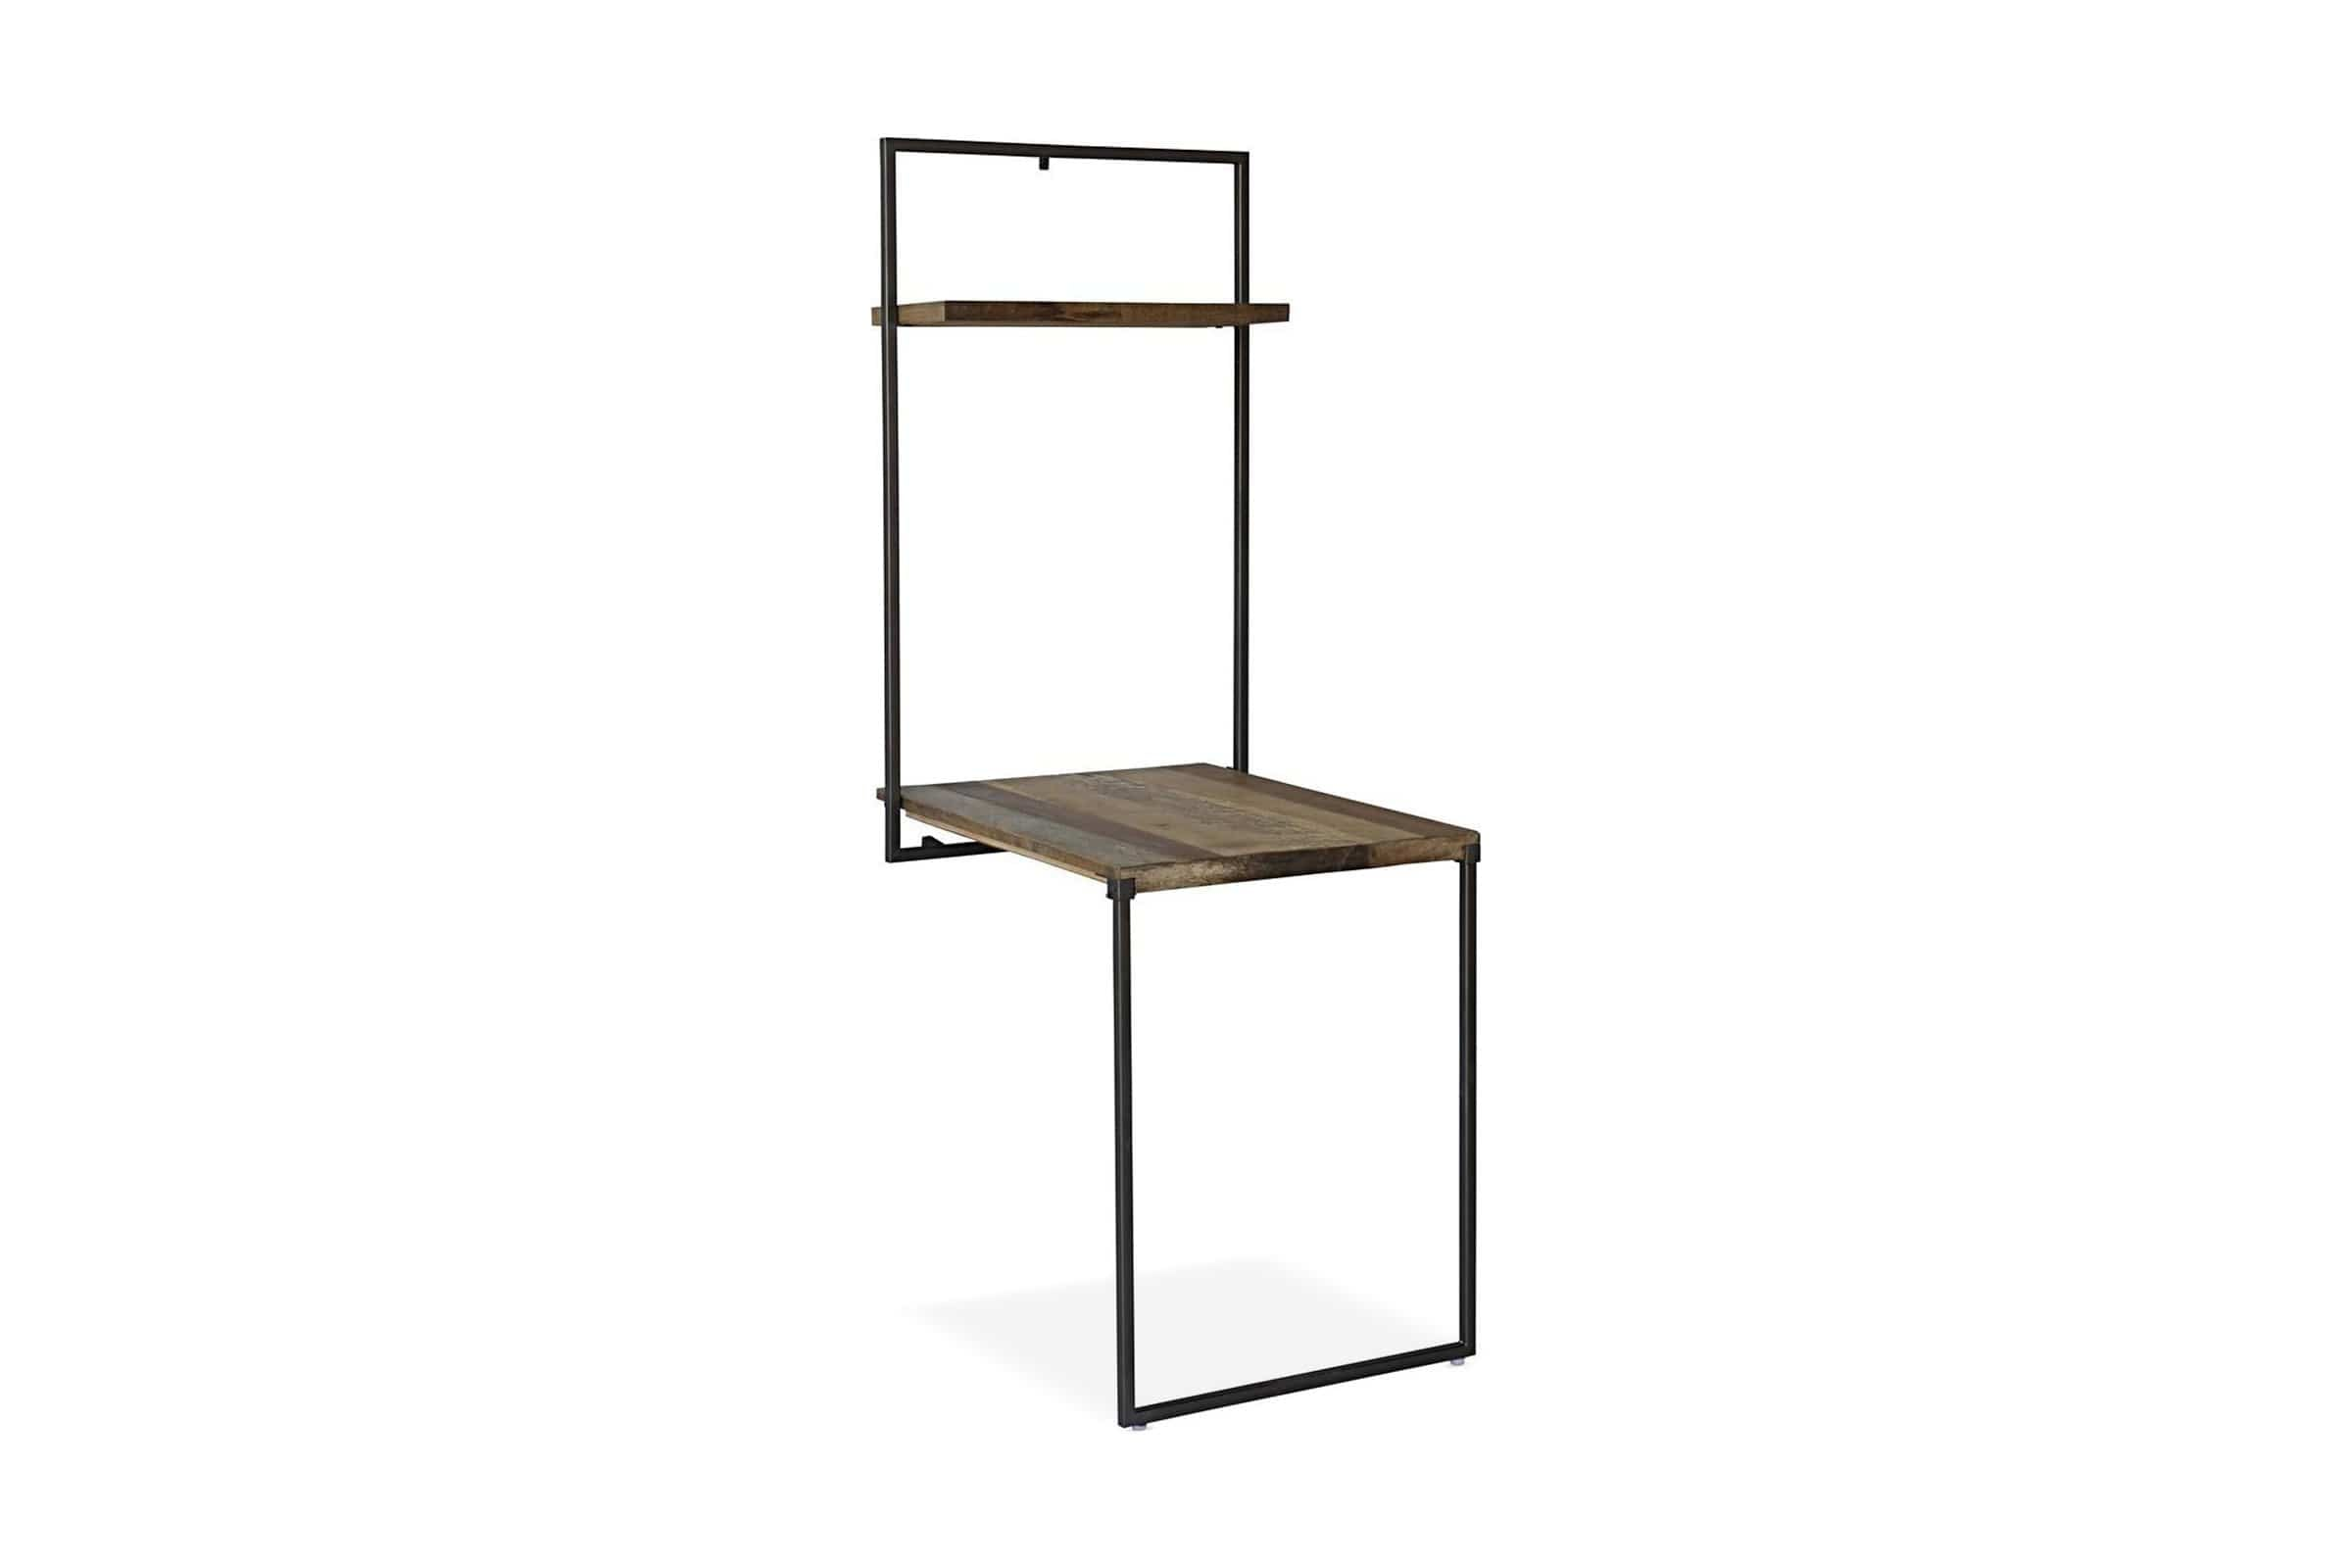 Sawyer Folding Table - Modern Dining Tables Sold by Apt2B